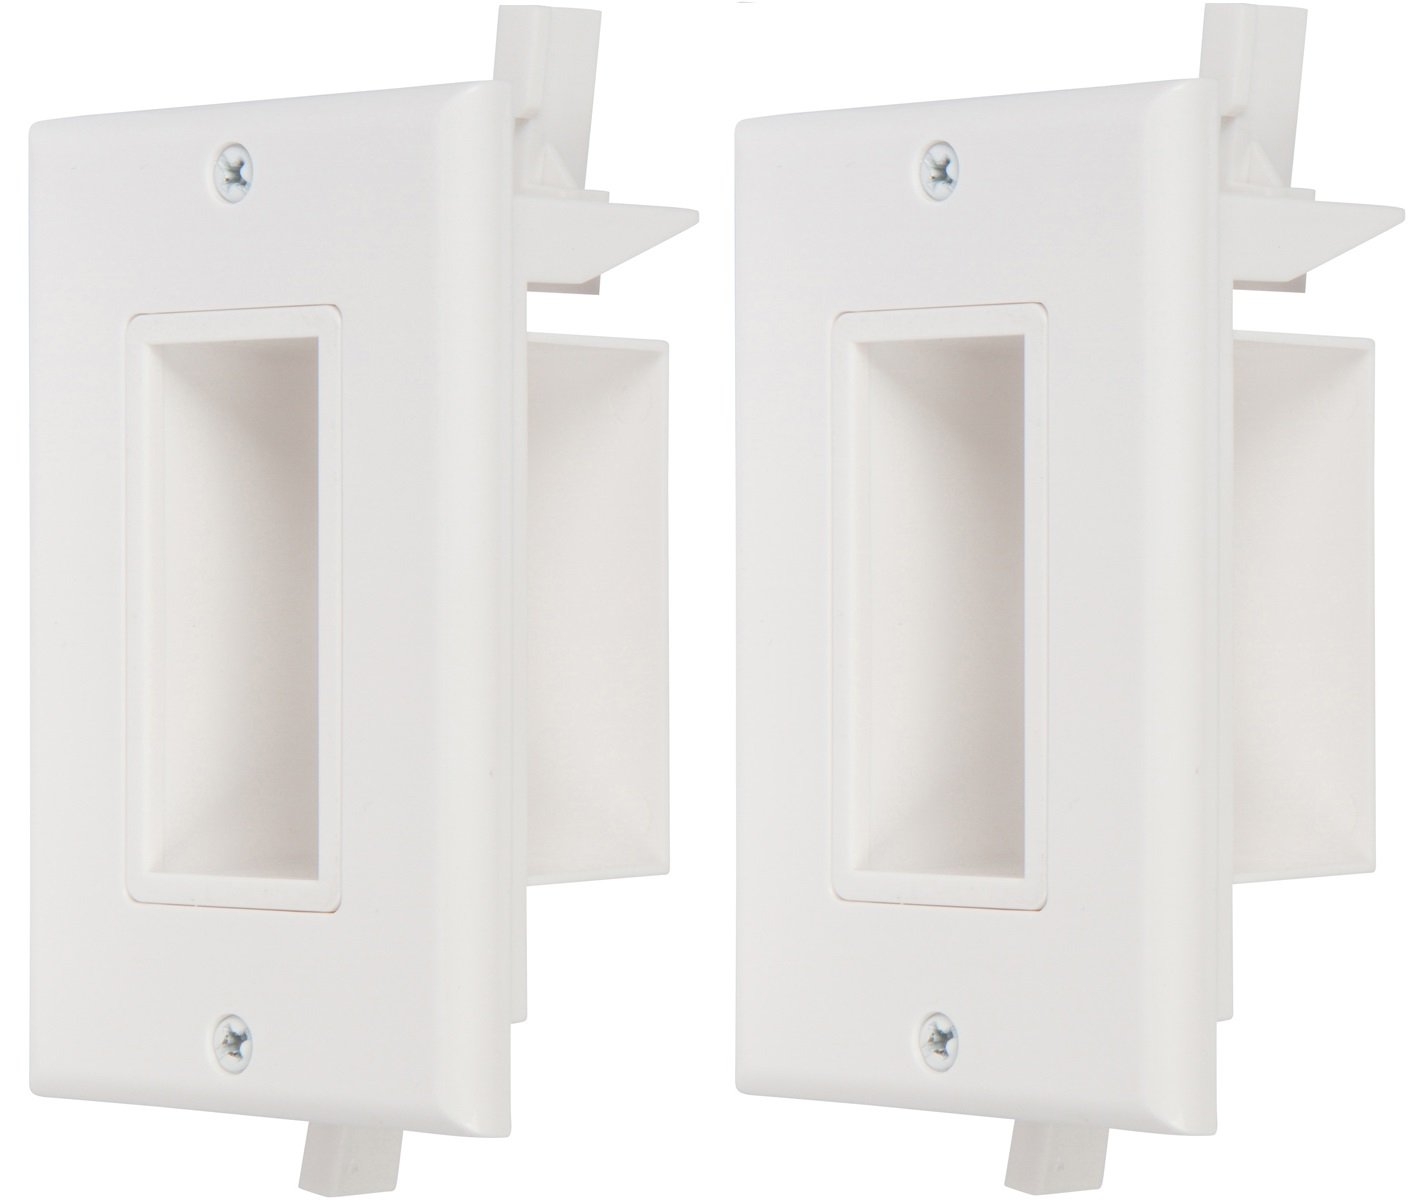 Cheap Cable Outlet Wall Plate Find Deals On Tv Wiring Plates Get Quotations Buyers Point Recessed Low Voltage Easy To Mount Hide